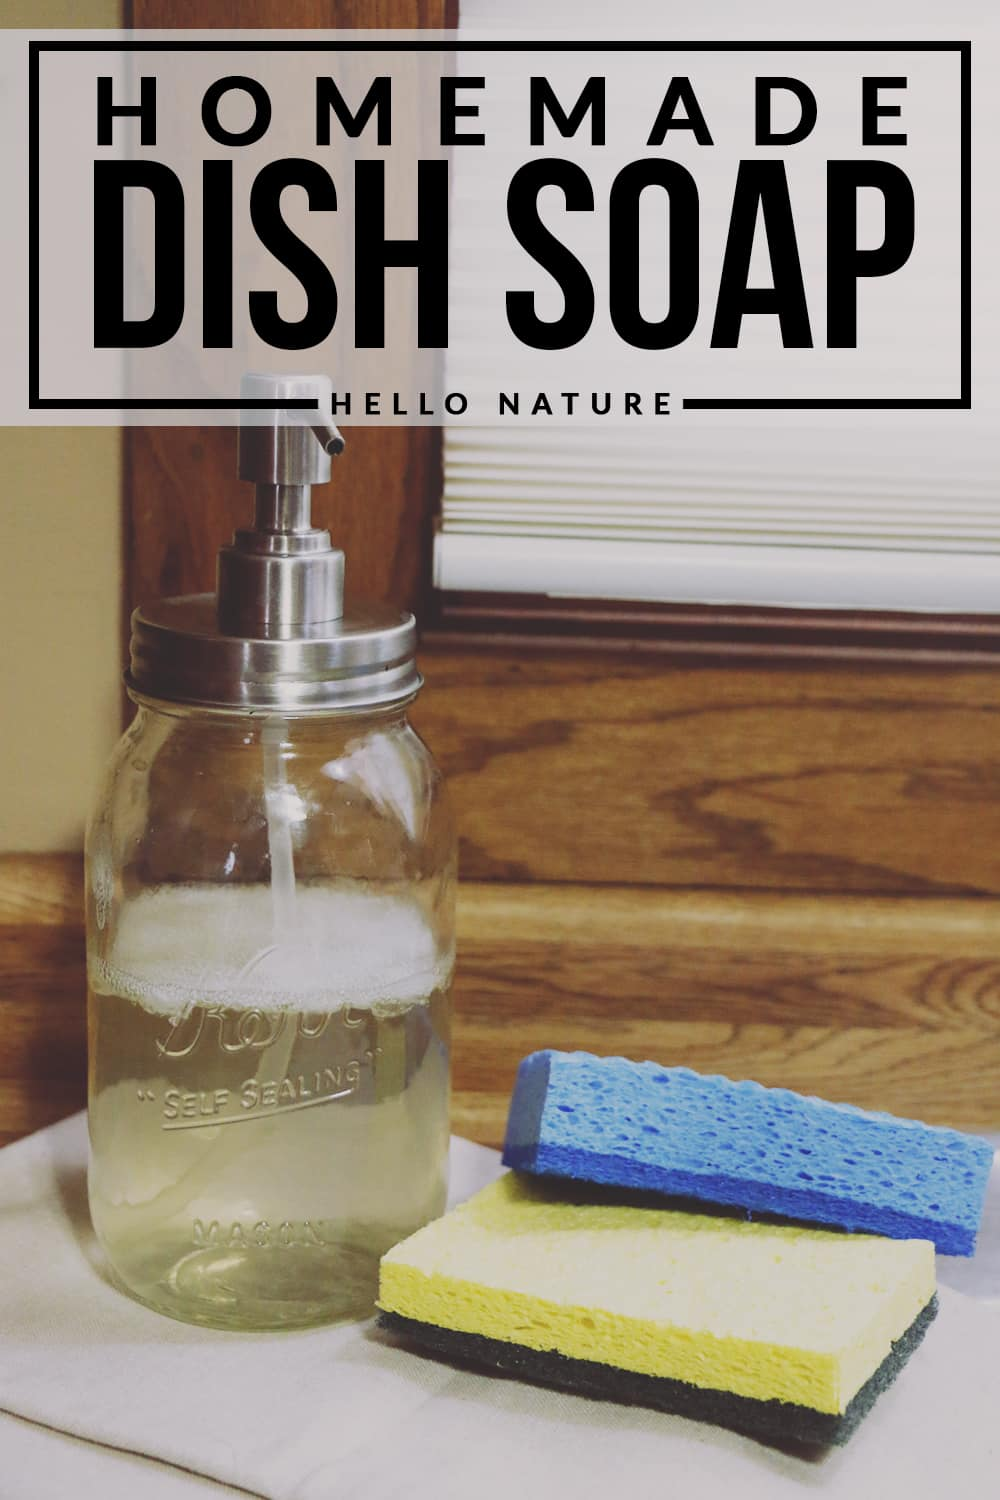 Did you know that homemade dish soap is ridiculously easy to make? This easy to follow recipe will help you make your own in no time!